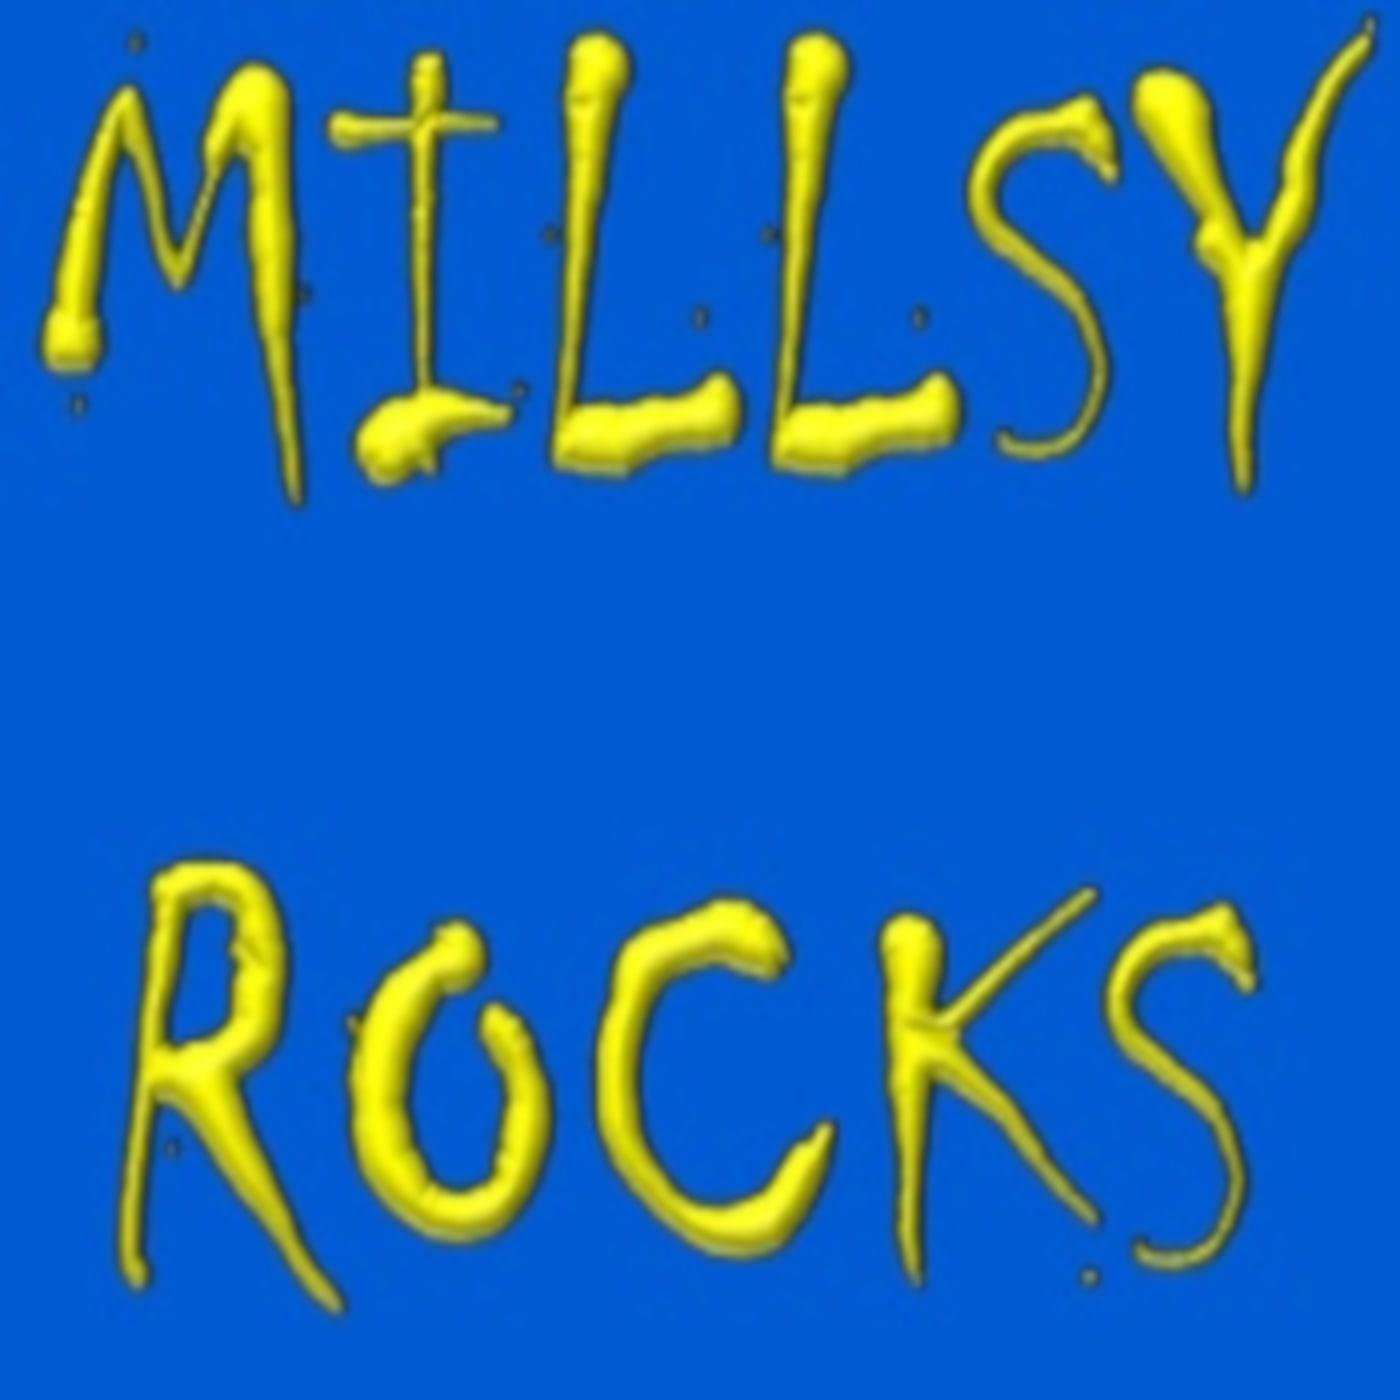 Millsy Rocks - Carl Mills Rock Metal Show